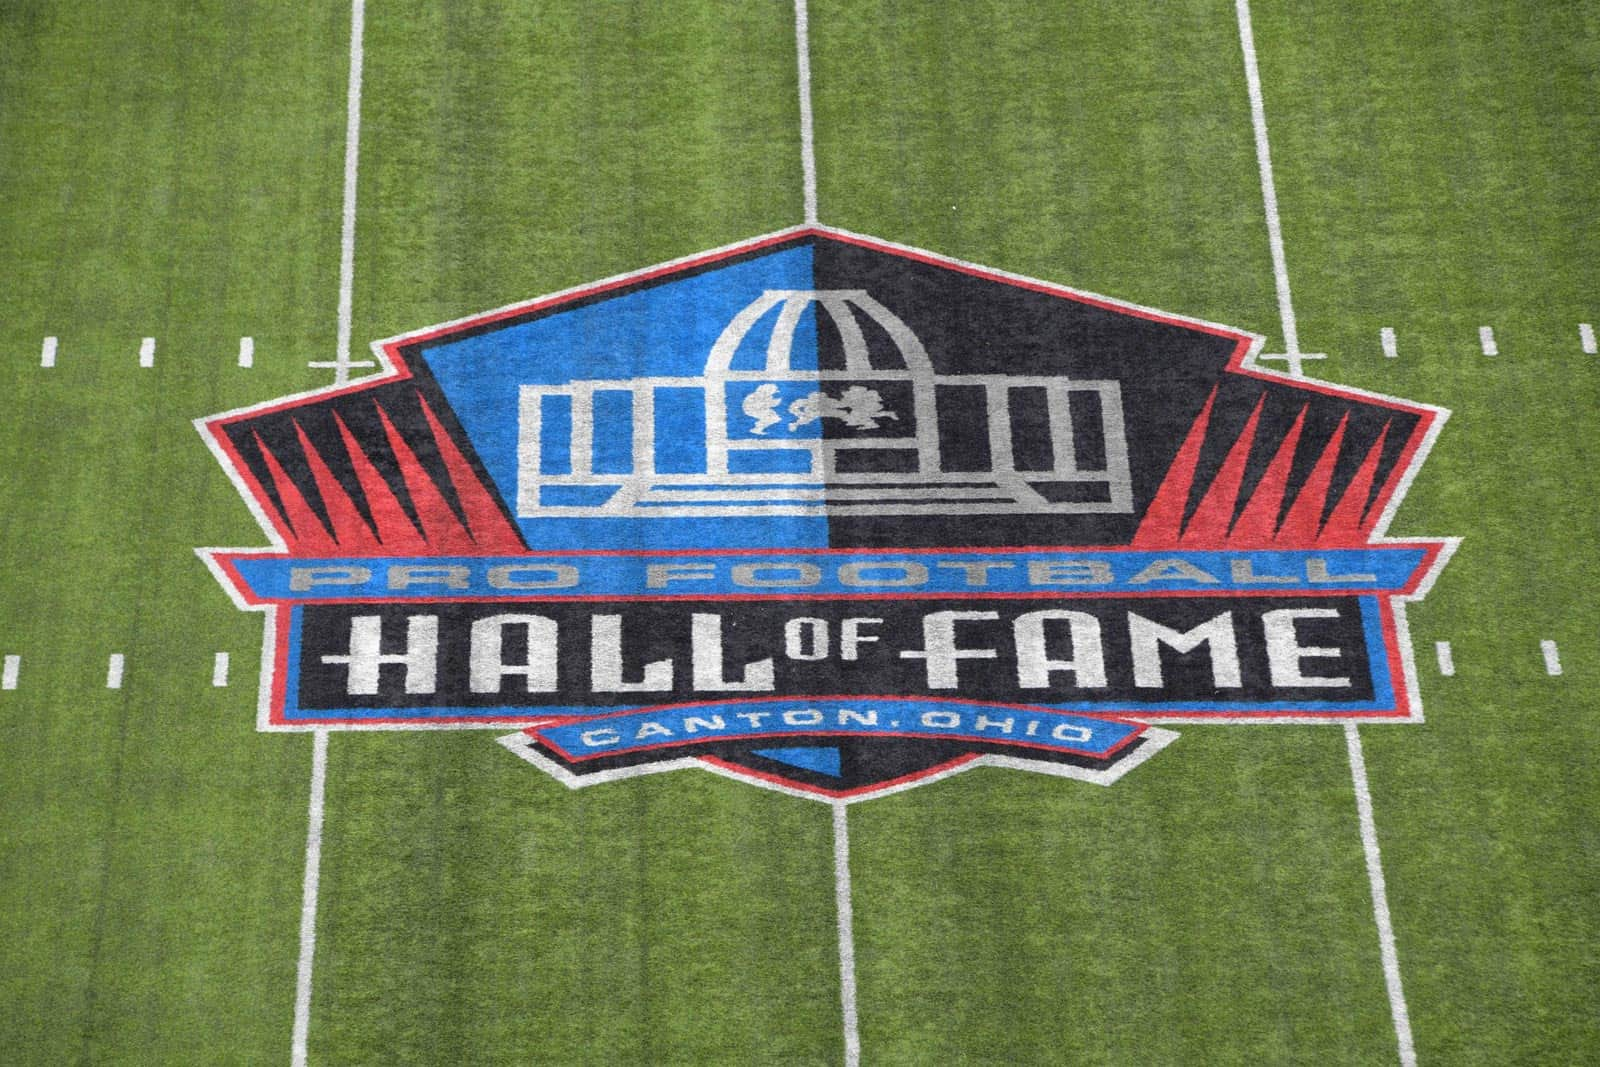 2019 NFL Hall of Fame Game